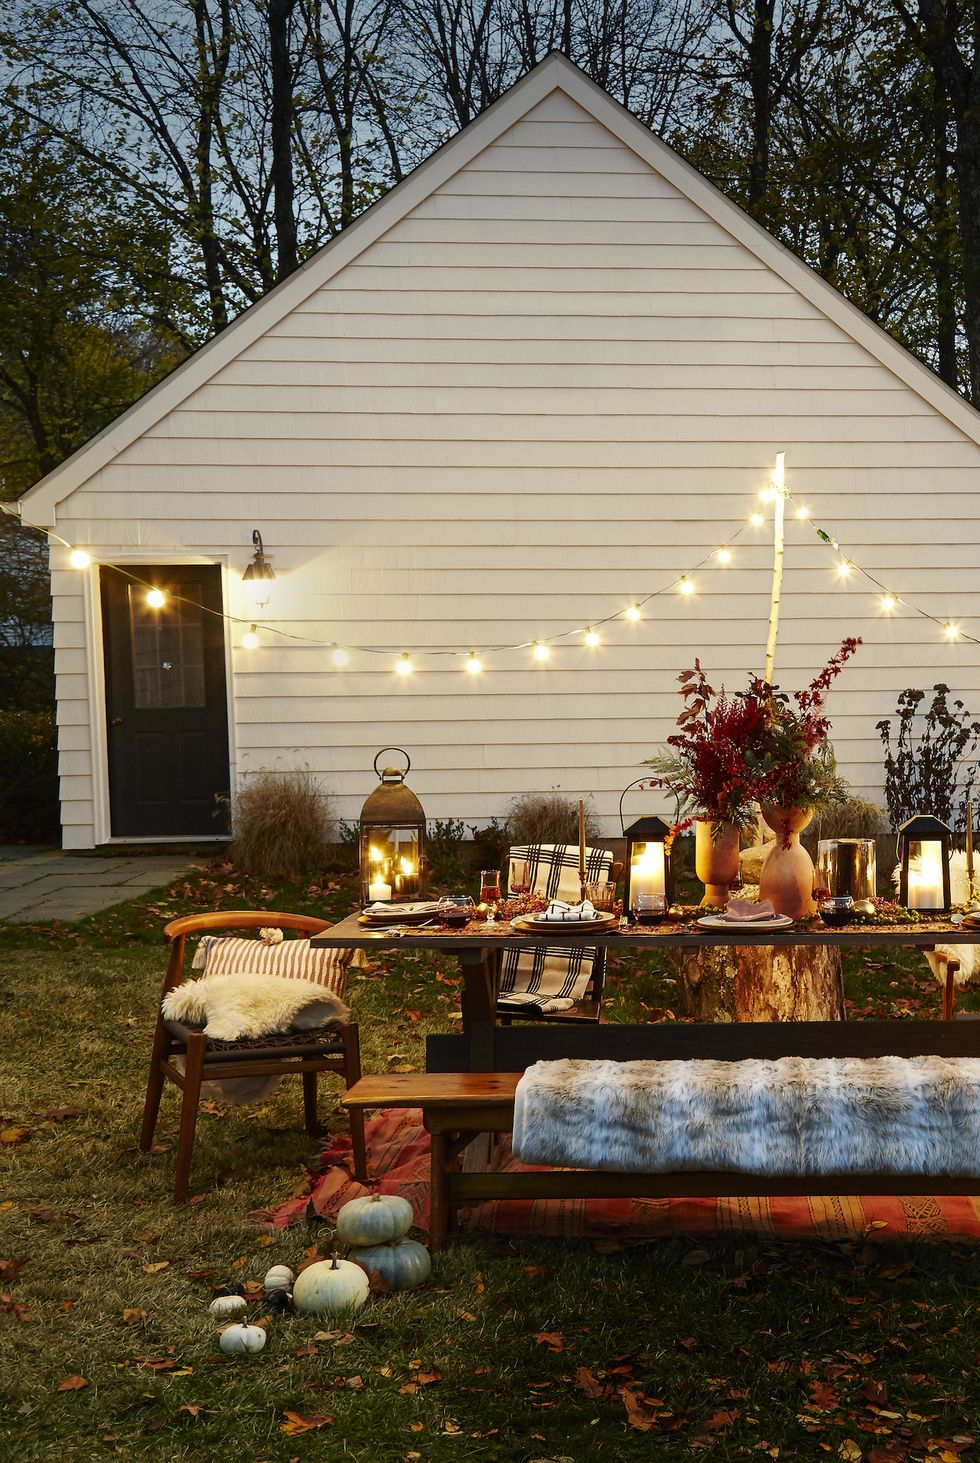 Fall is still great for outdoor hangouts! Source: Good Housekeeping